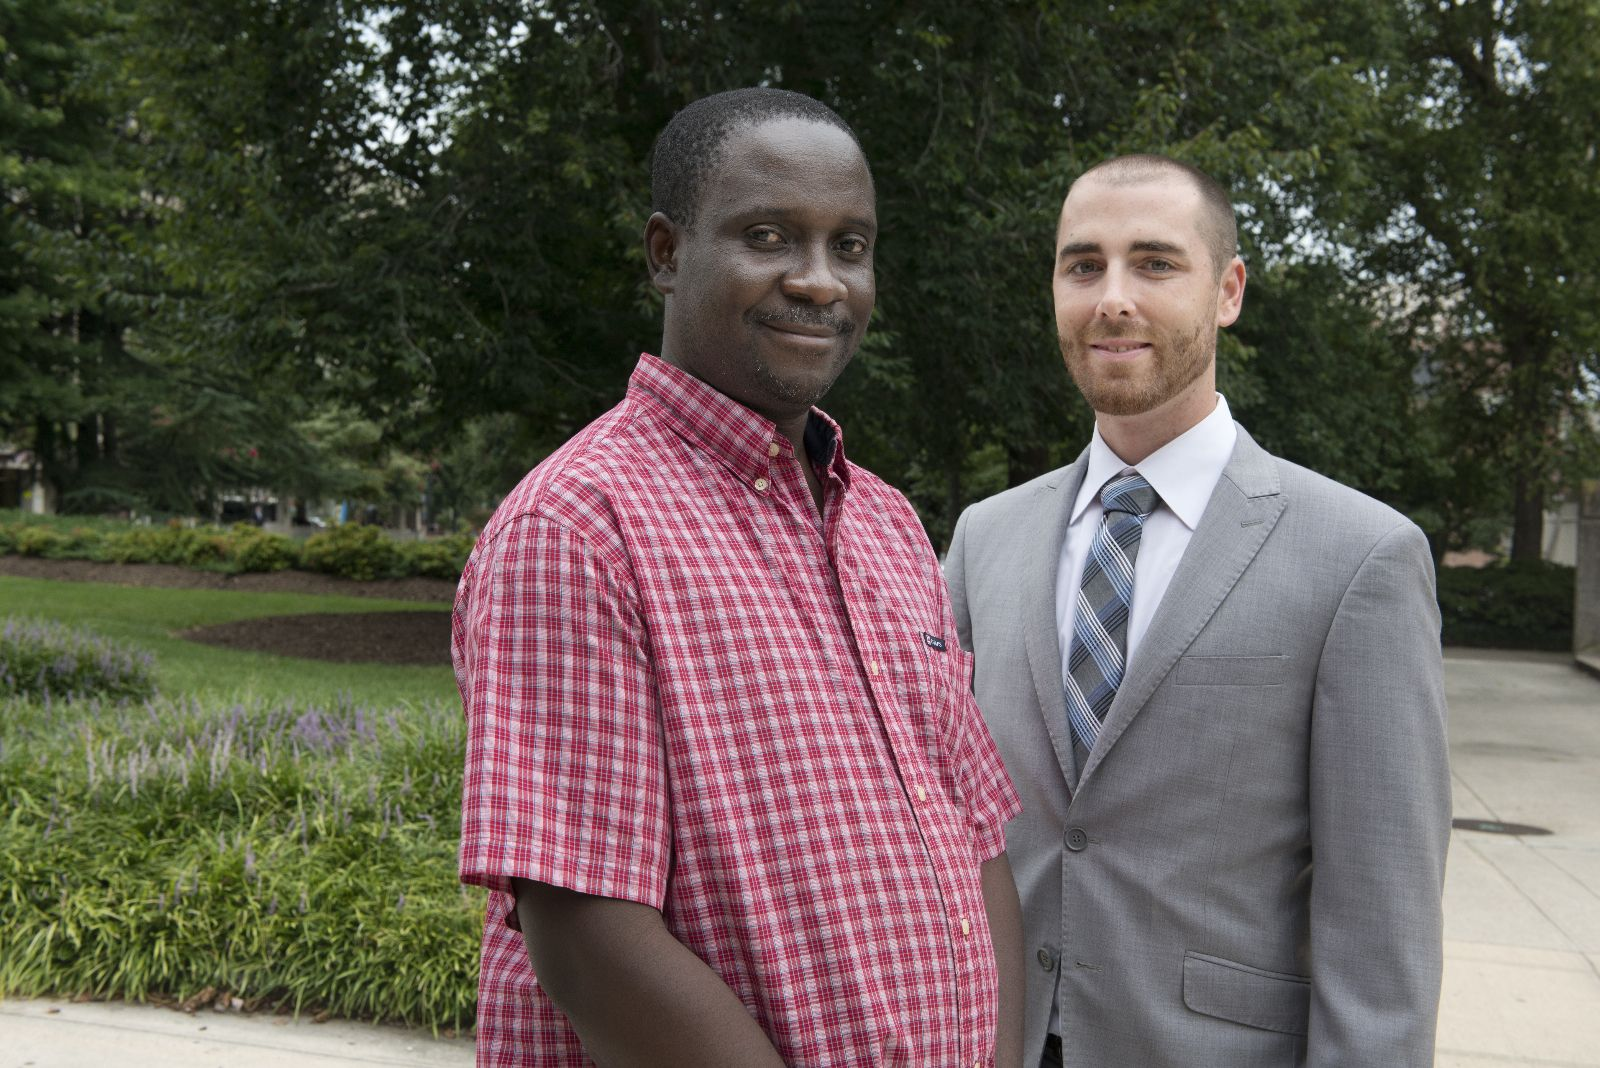 Elon Law clinic client Mandigo Vambe, left, and Elon Law alumnus Joe Baker